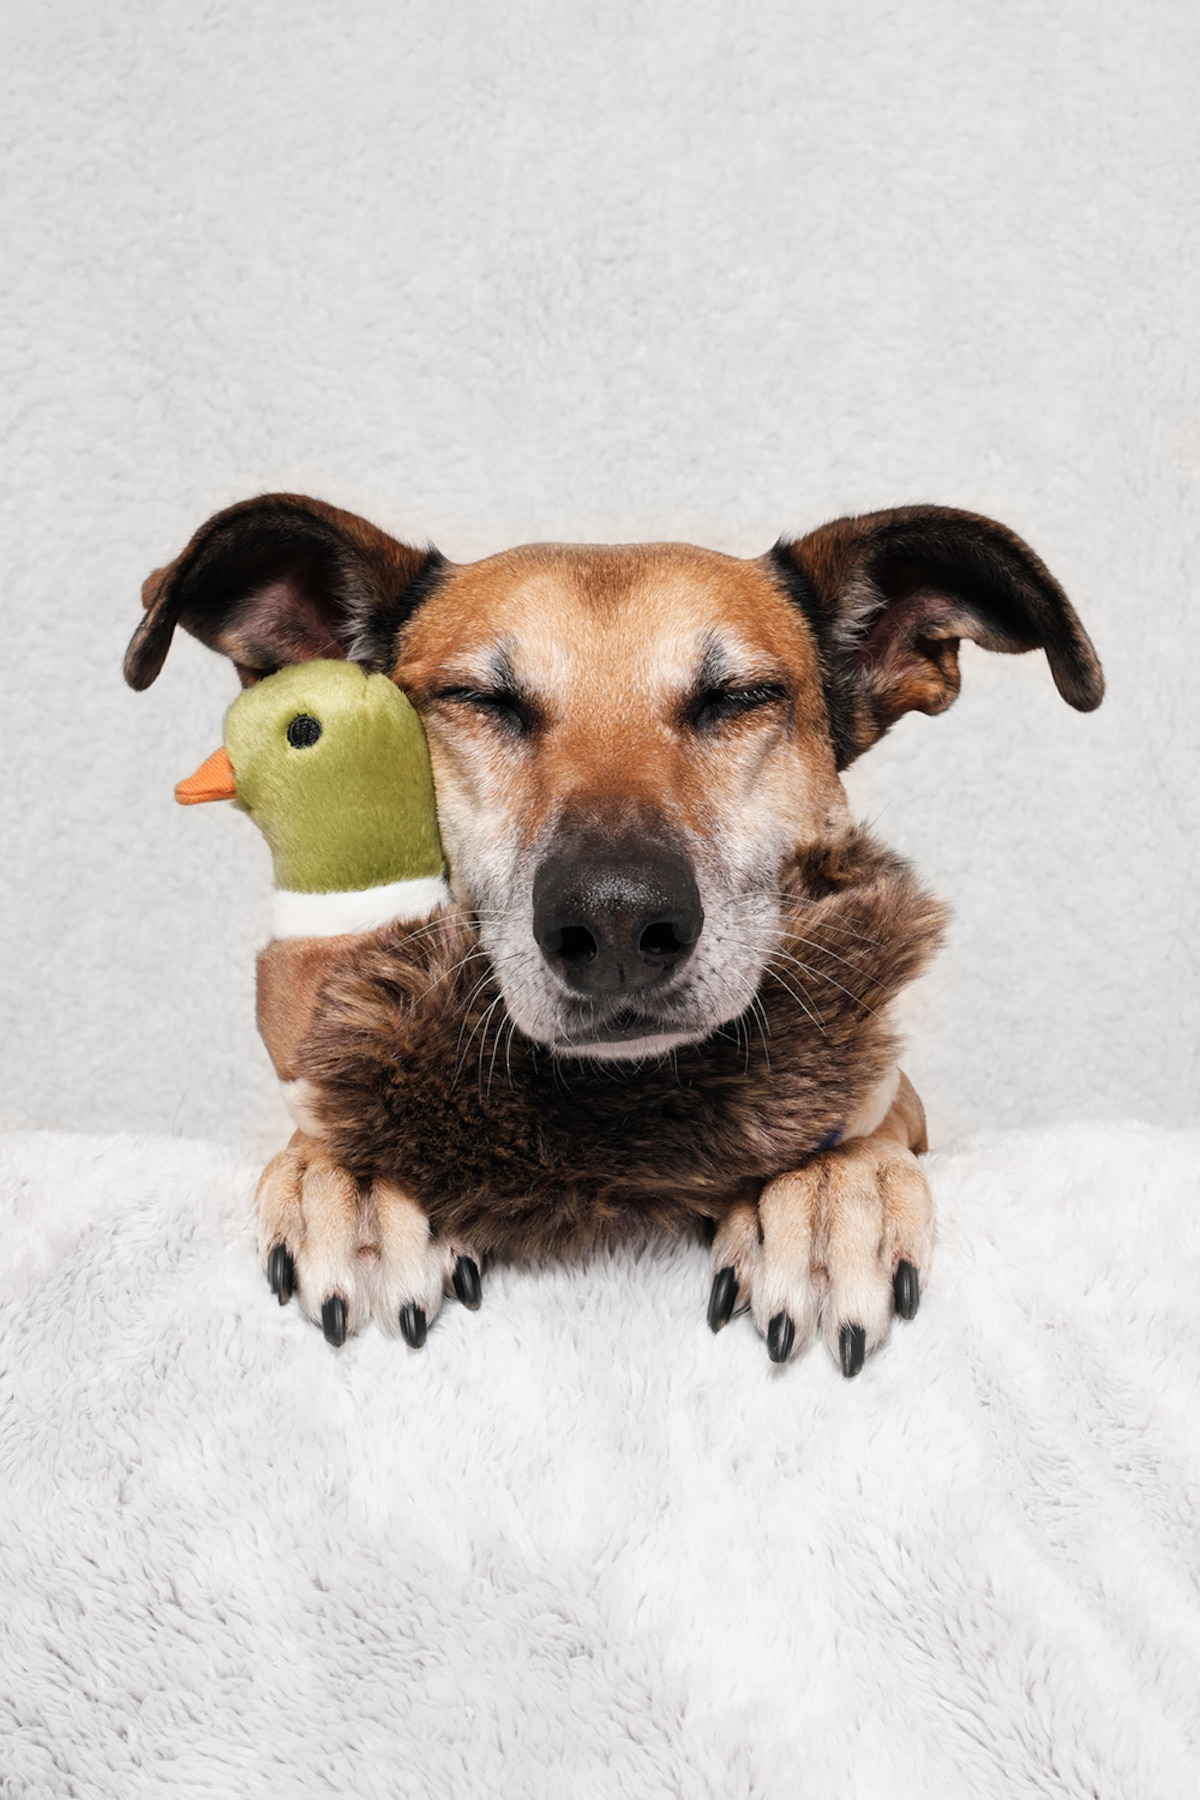 Cute Dog Photography by Elke Vogelsang